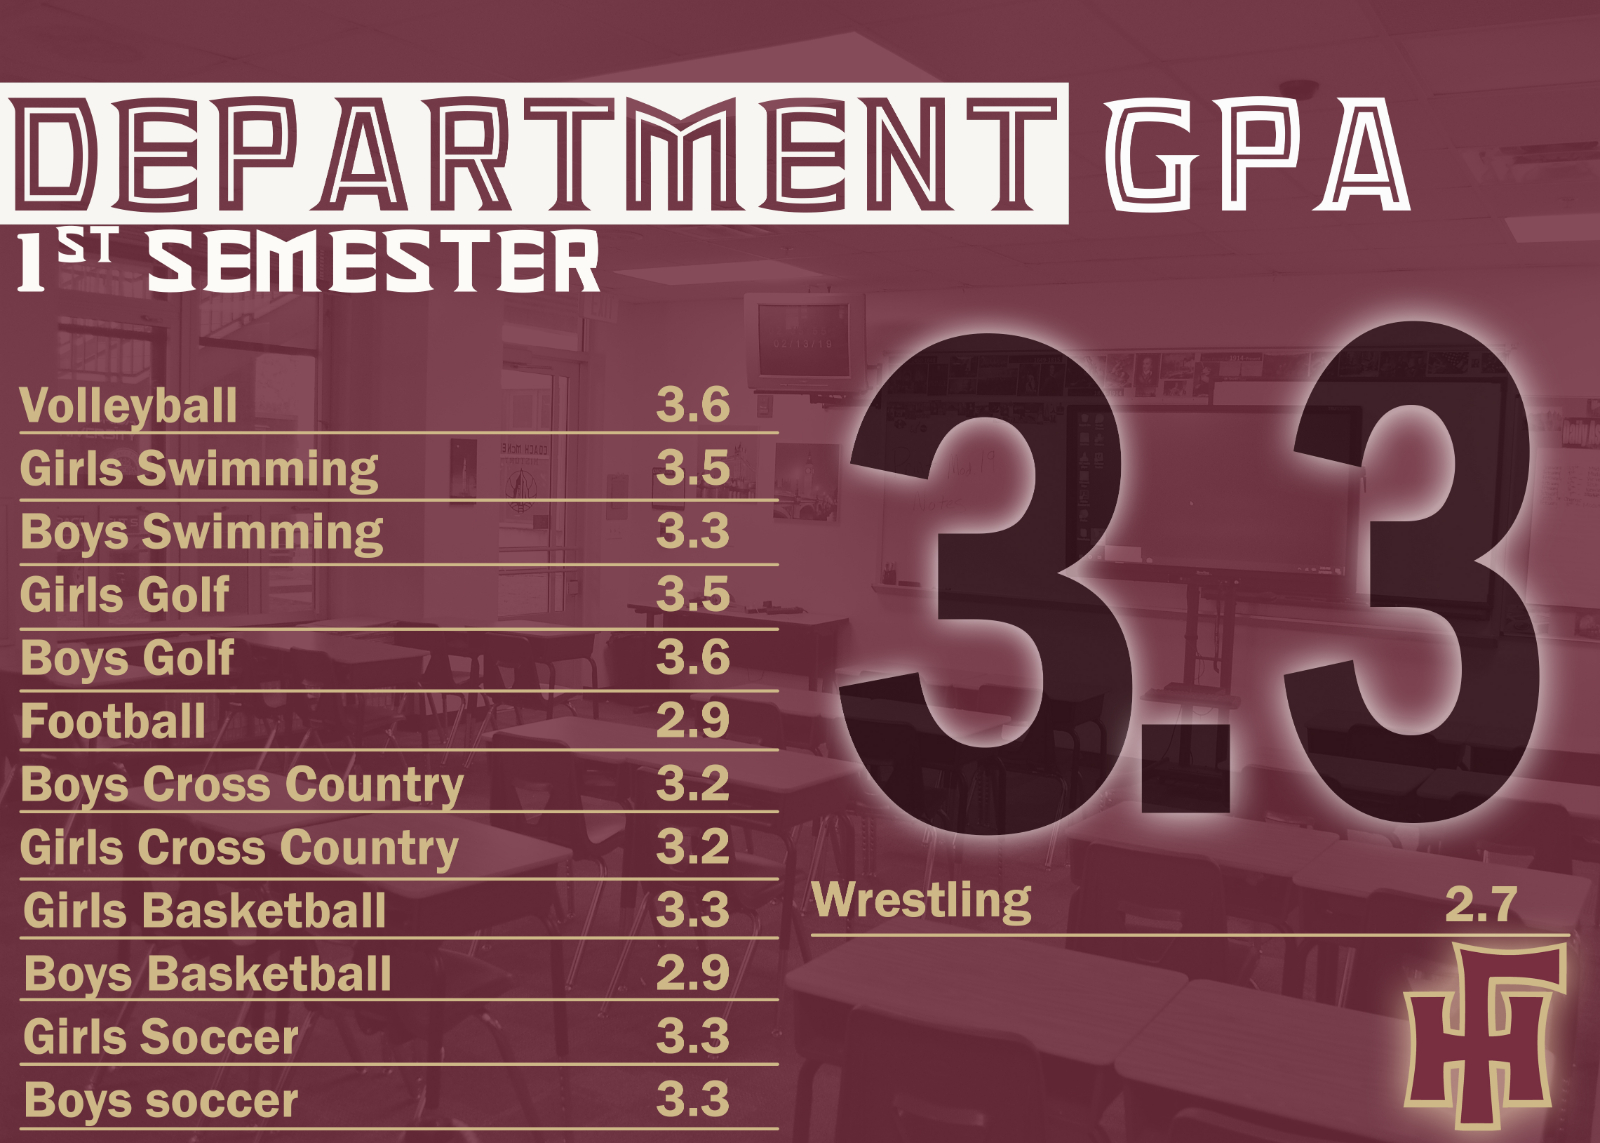 Seminoles Finish Strong In The Classroom